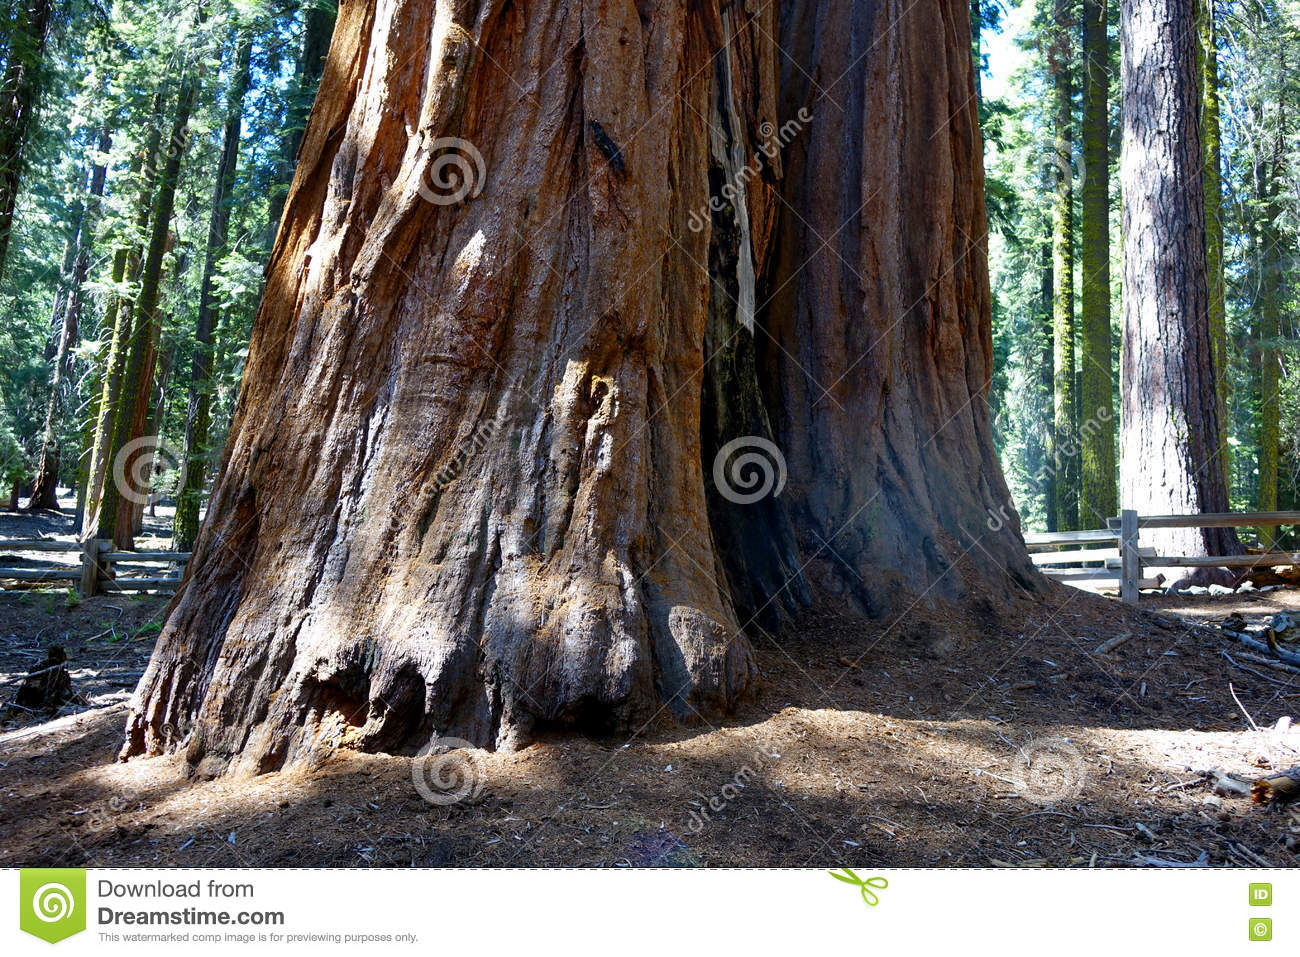 arbre de séquoia géant, la californie photo stock - image du